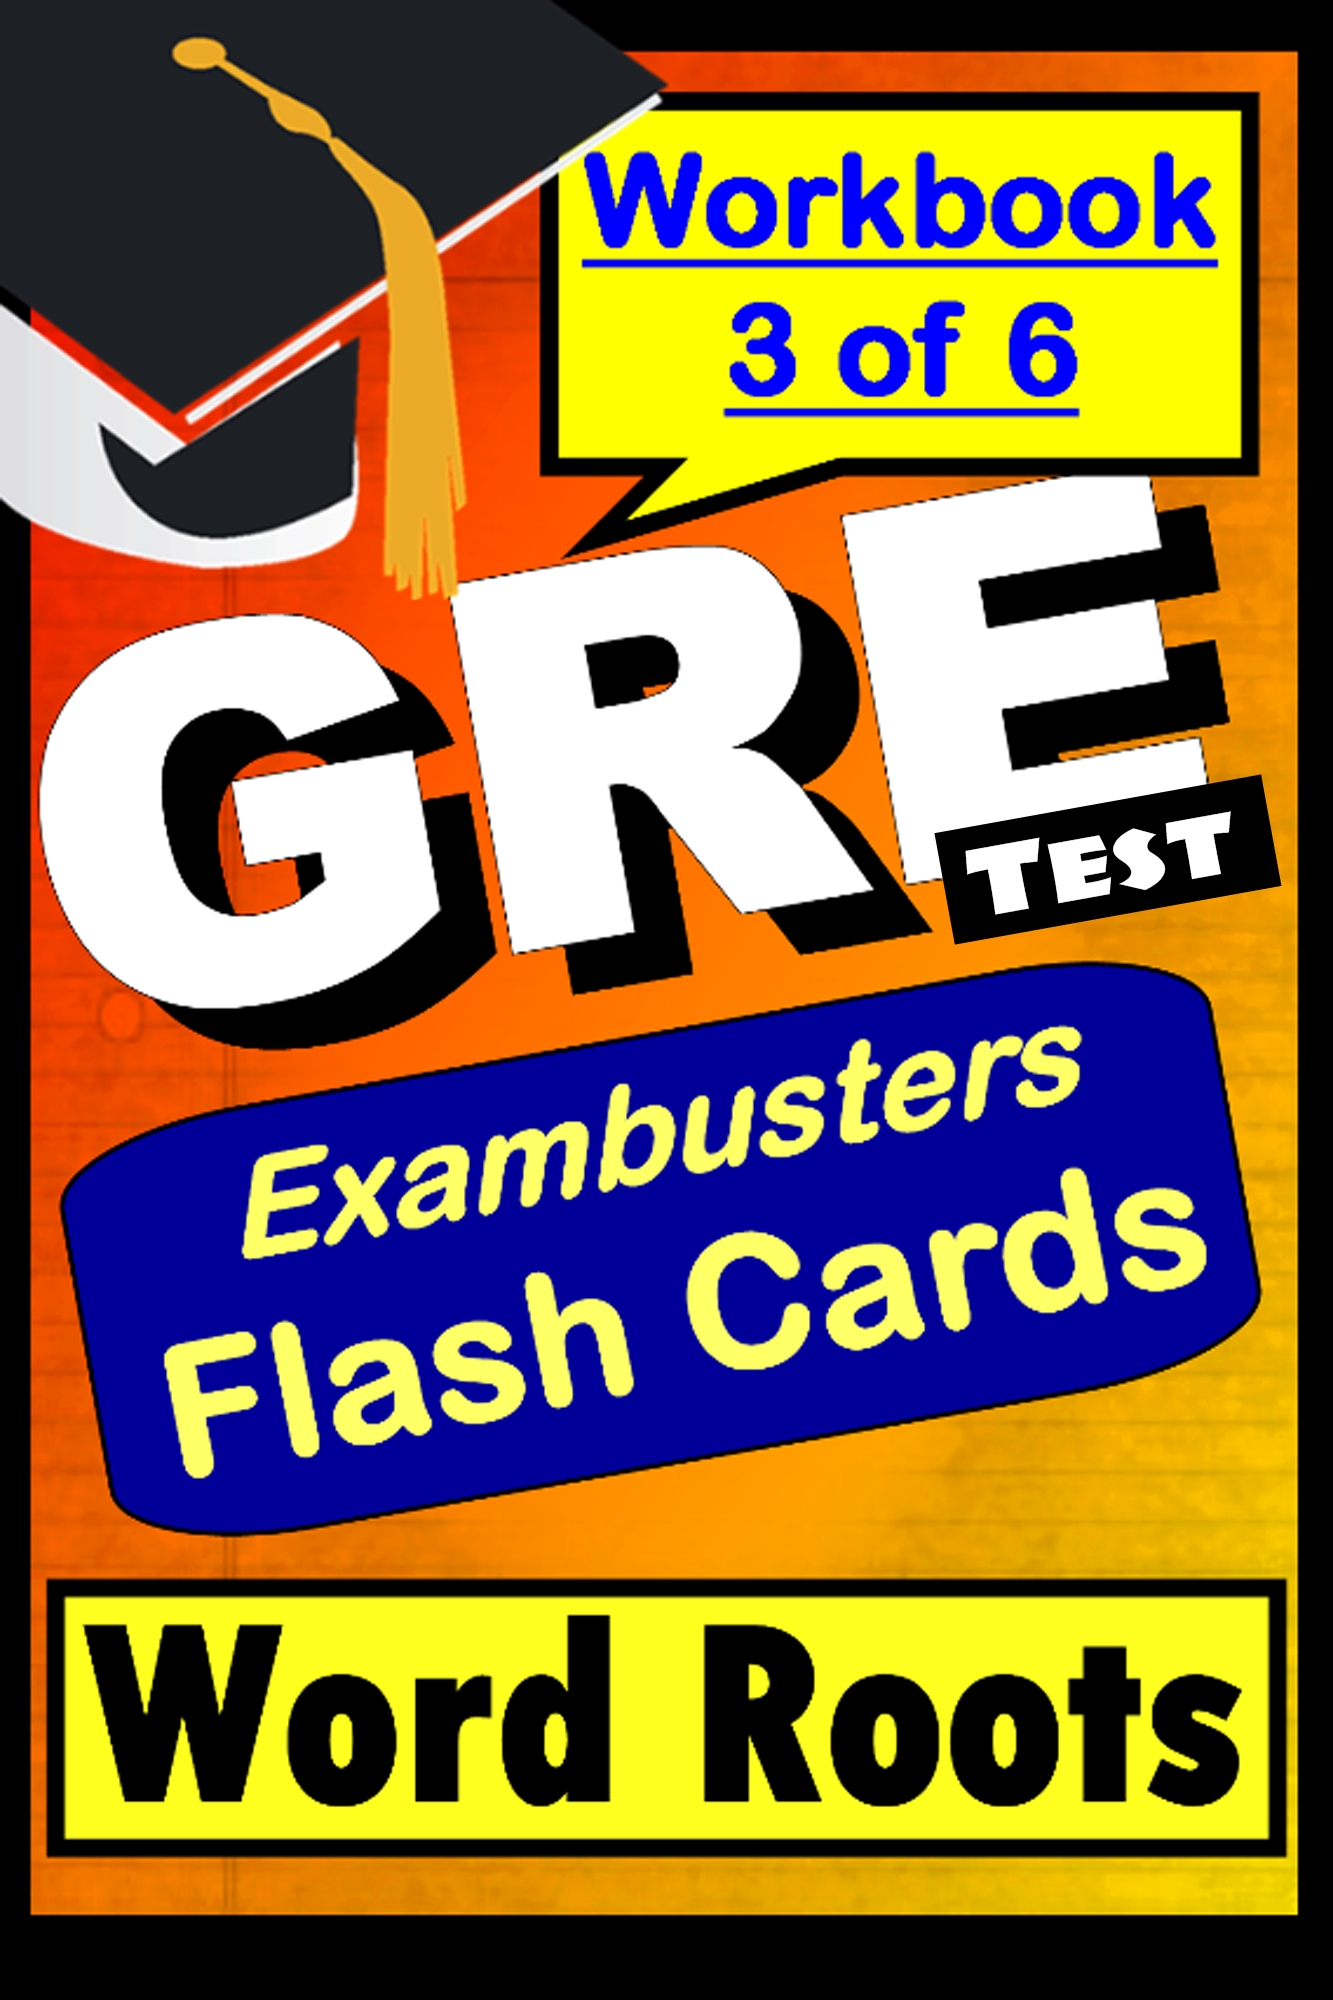 GRE Test Word Roots--Exambusters Flashcards--Workbook 3 of 6